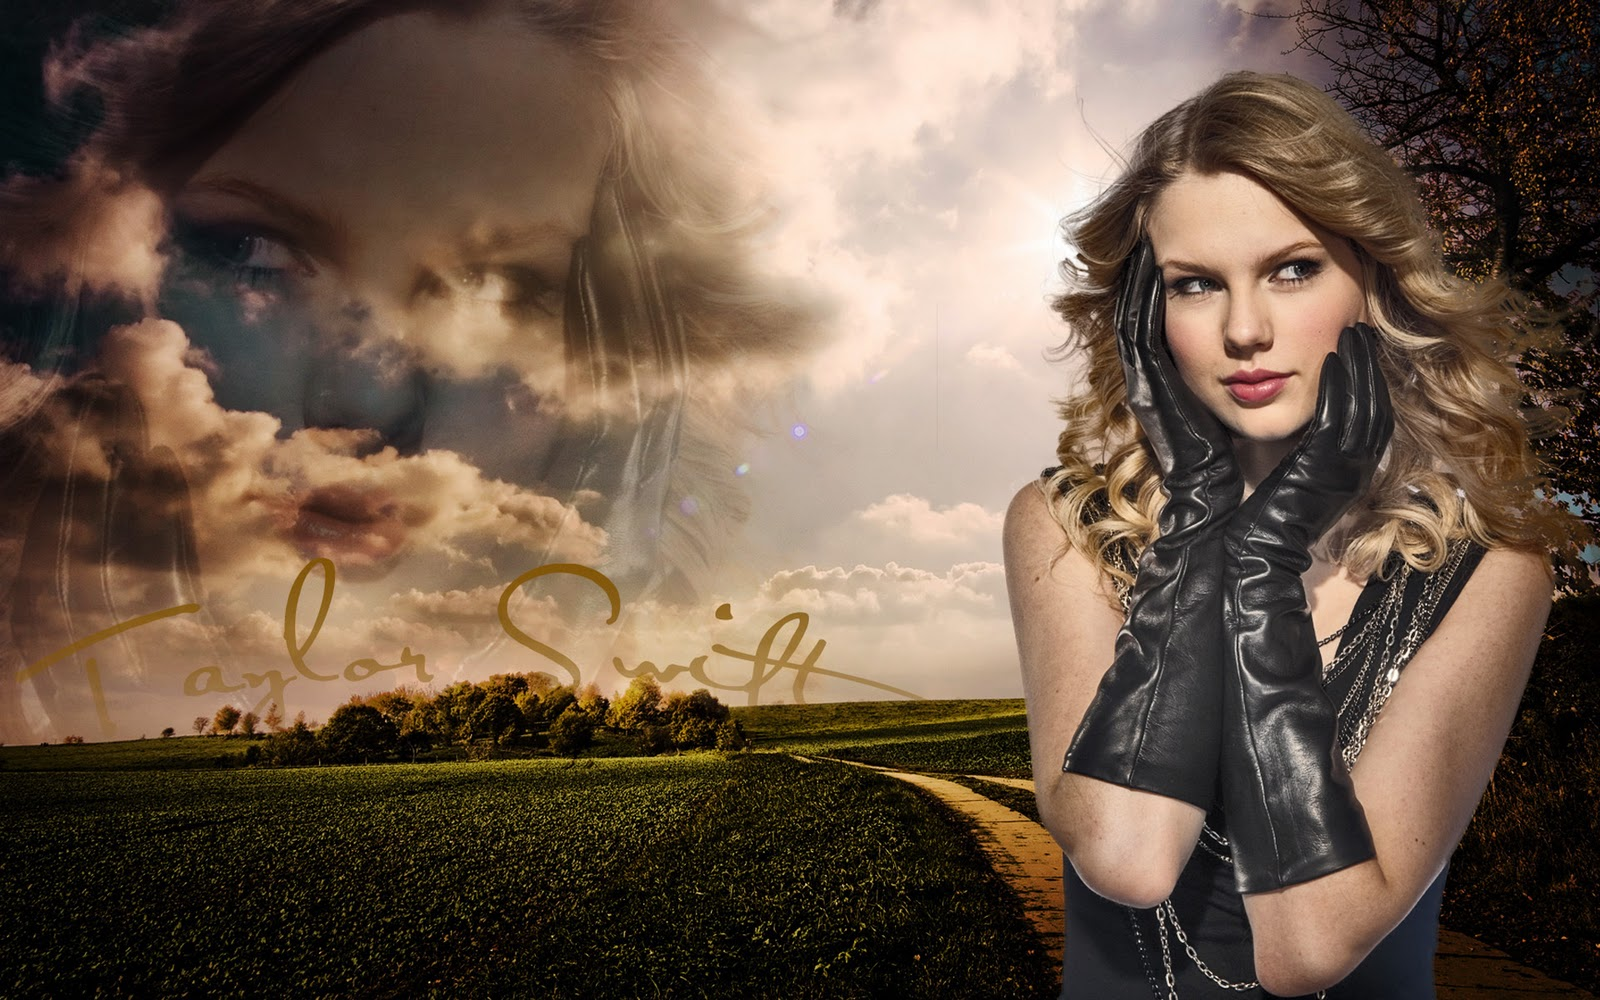 taylor swift desktop wallpapers - WallpapersWide Taylor Swift HD Desktop Wallpapers